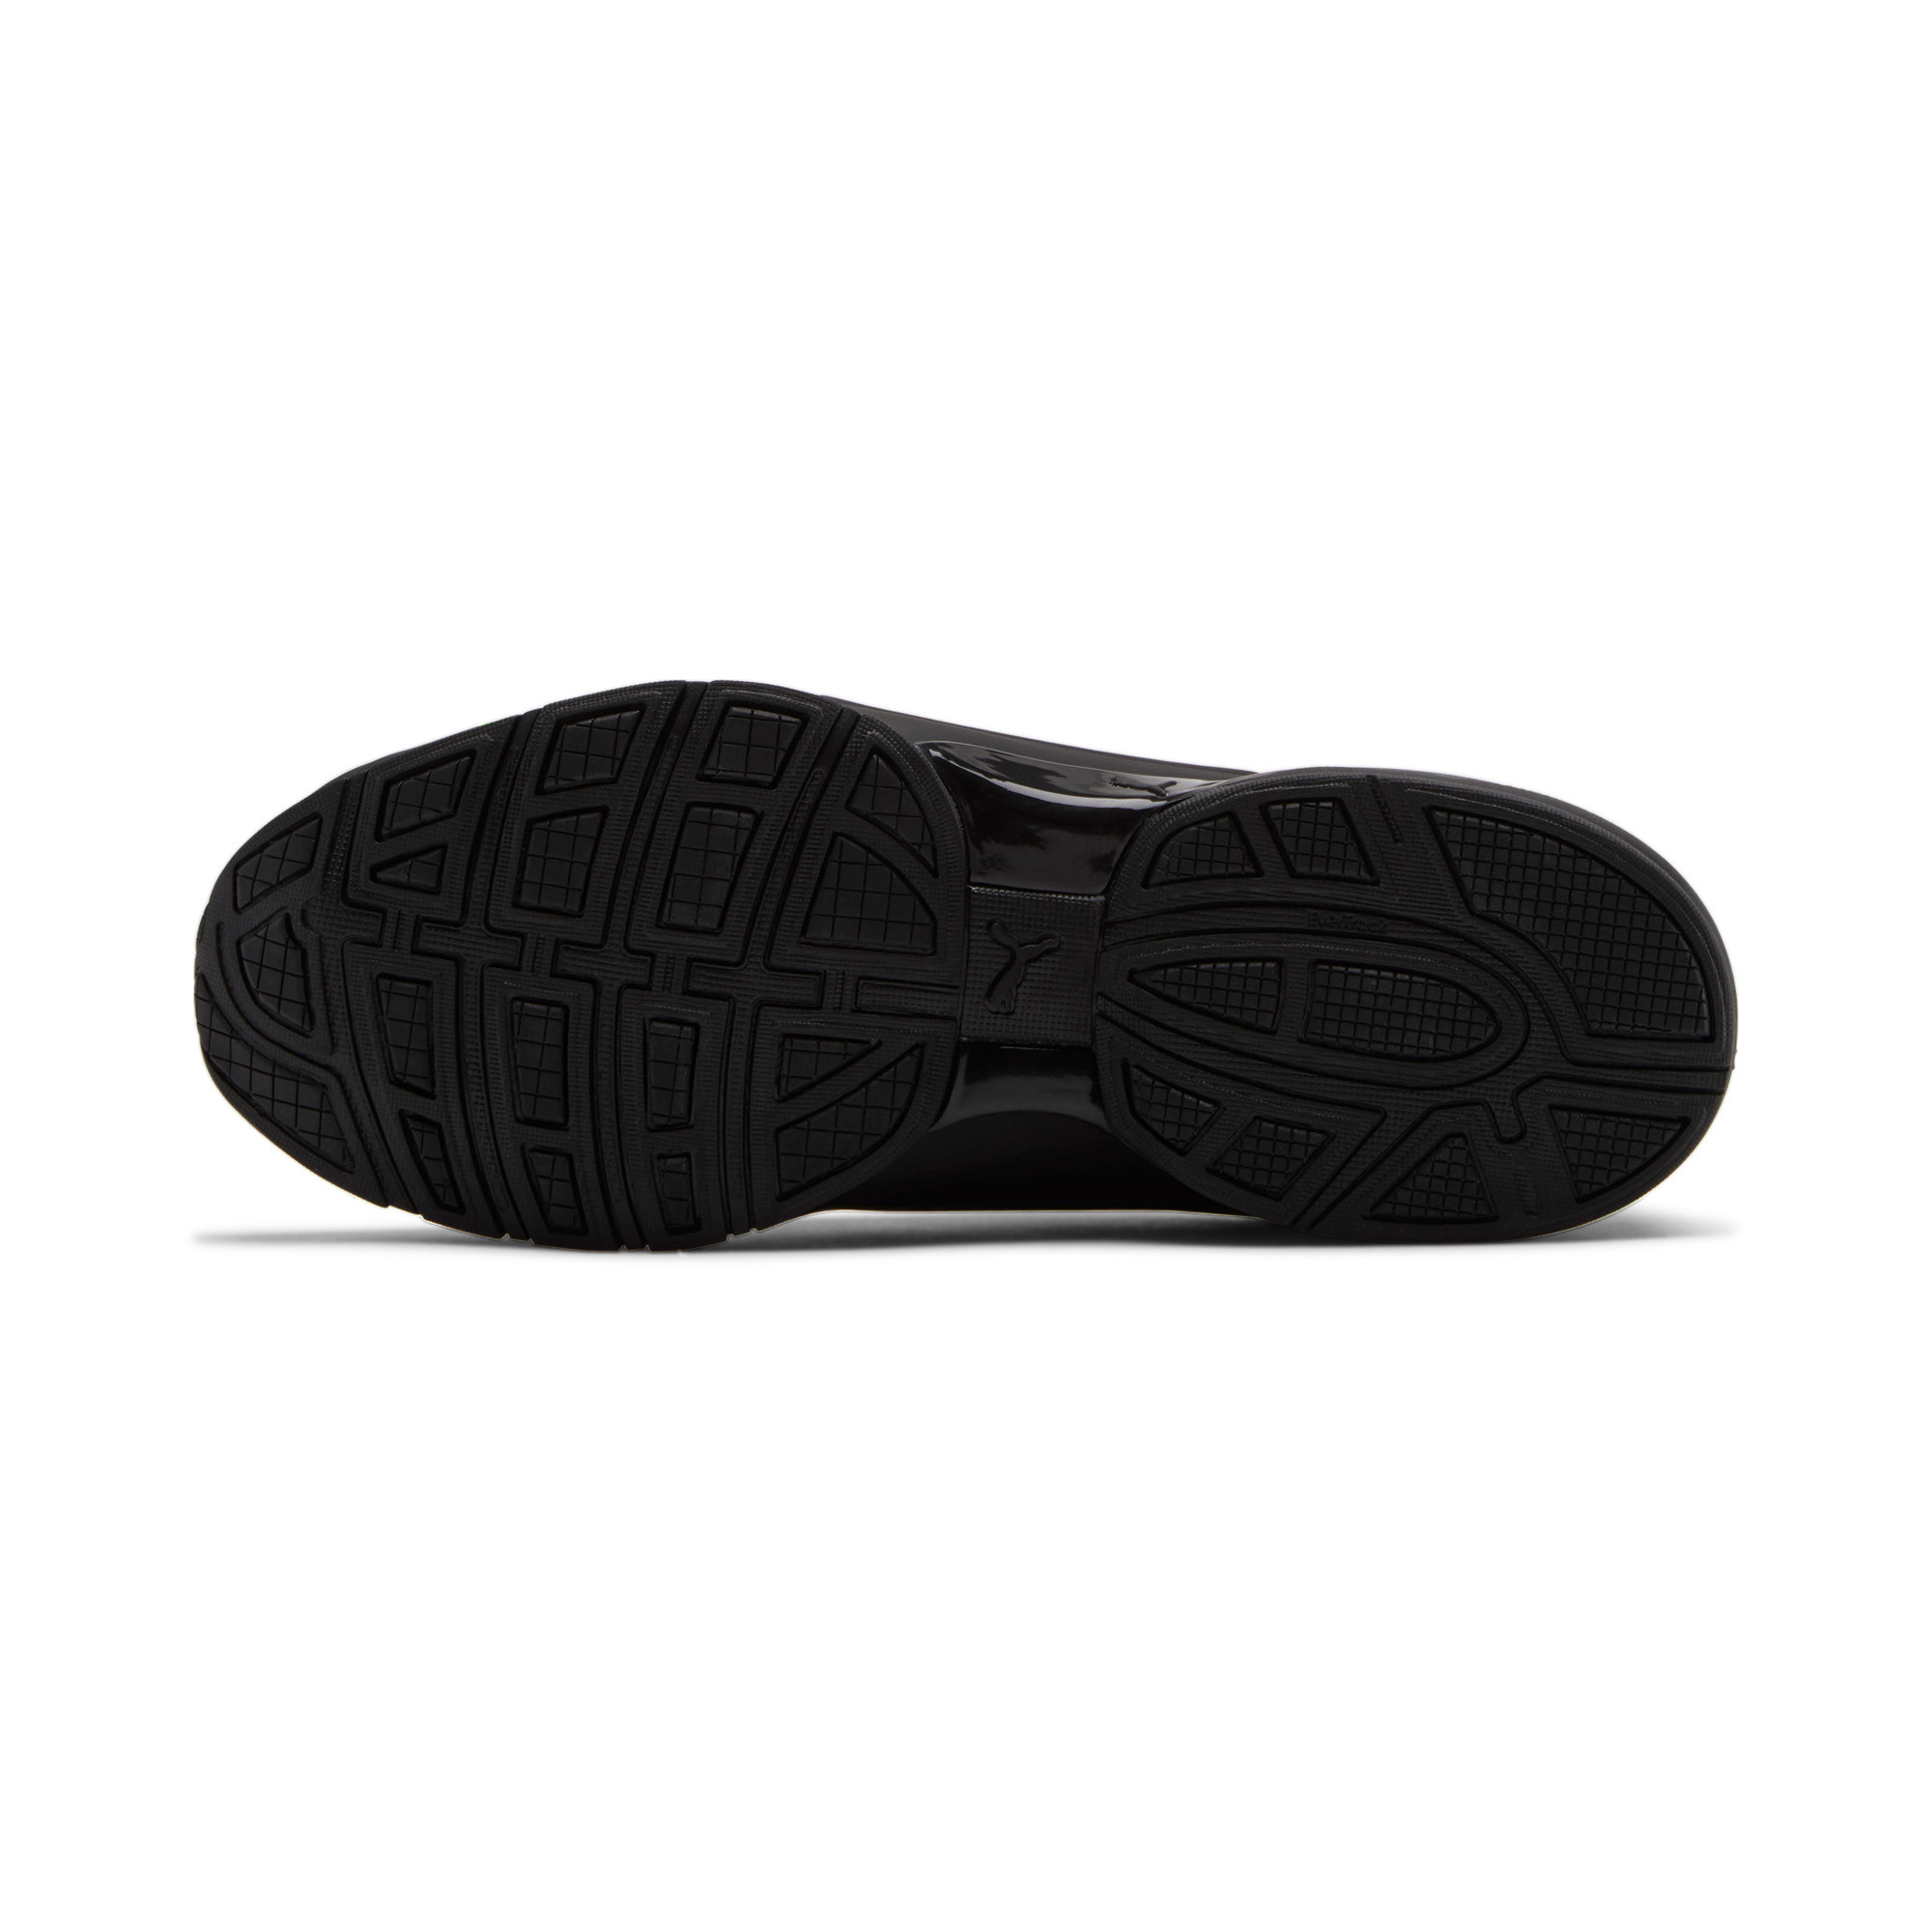 PUMA-Men-039-s-Viz-Runner-Graphic-Sneakers thumbnail 5